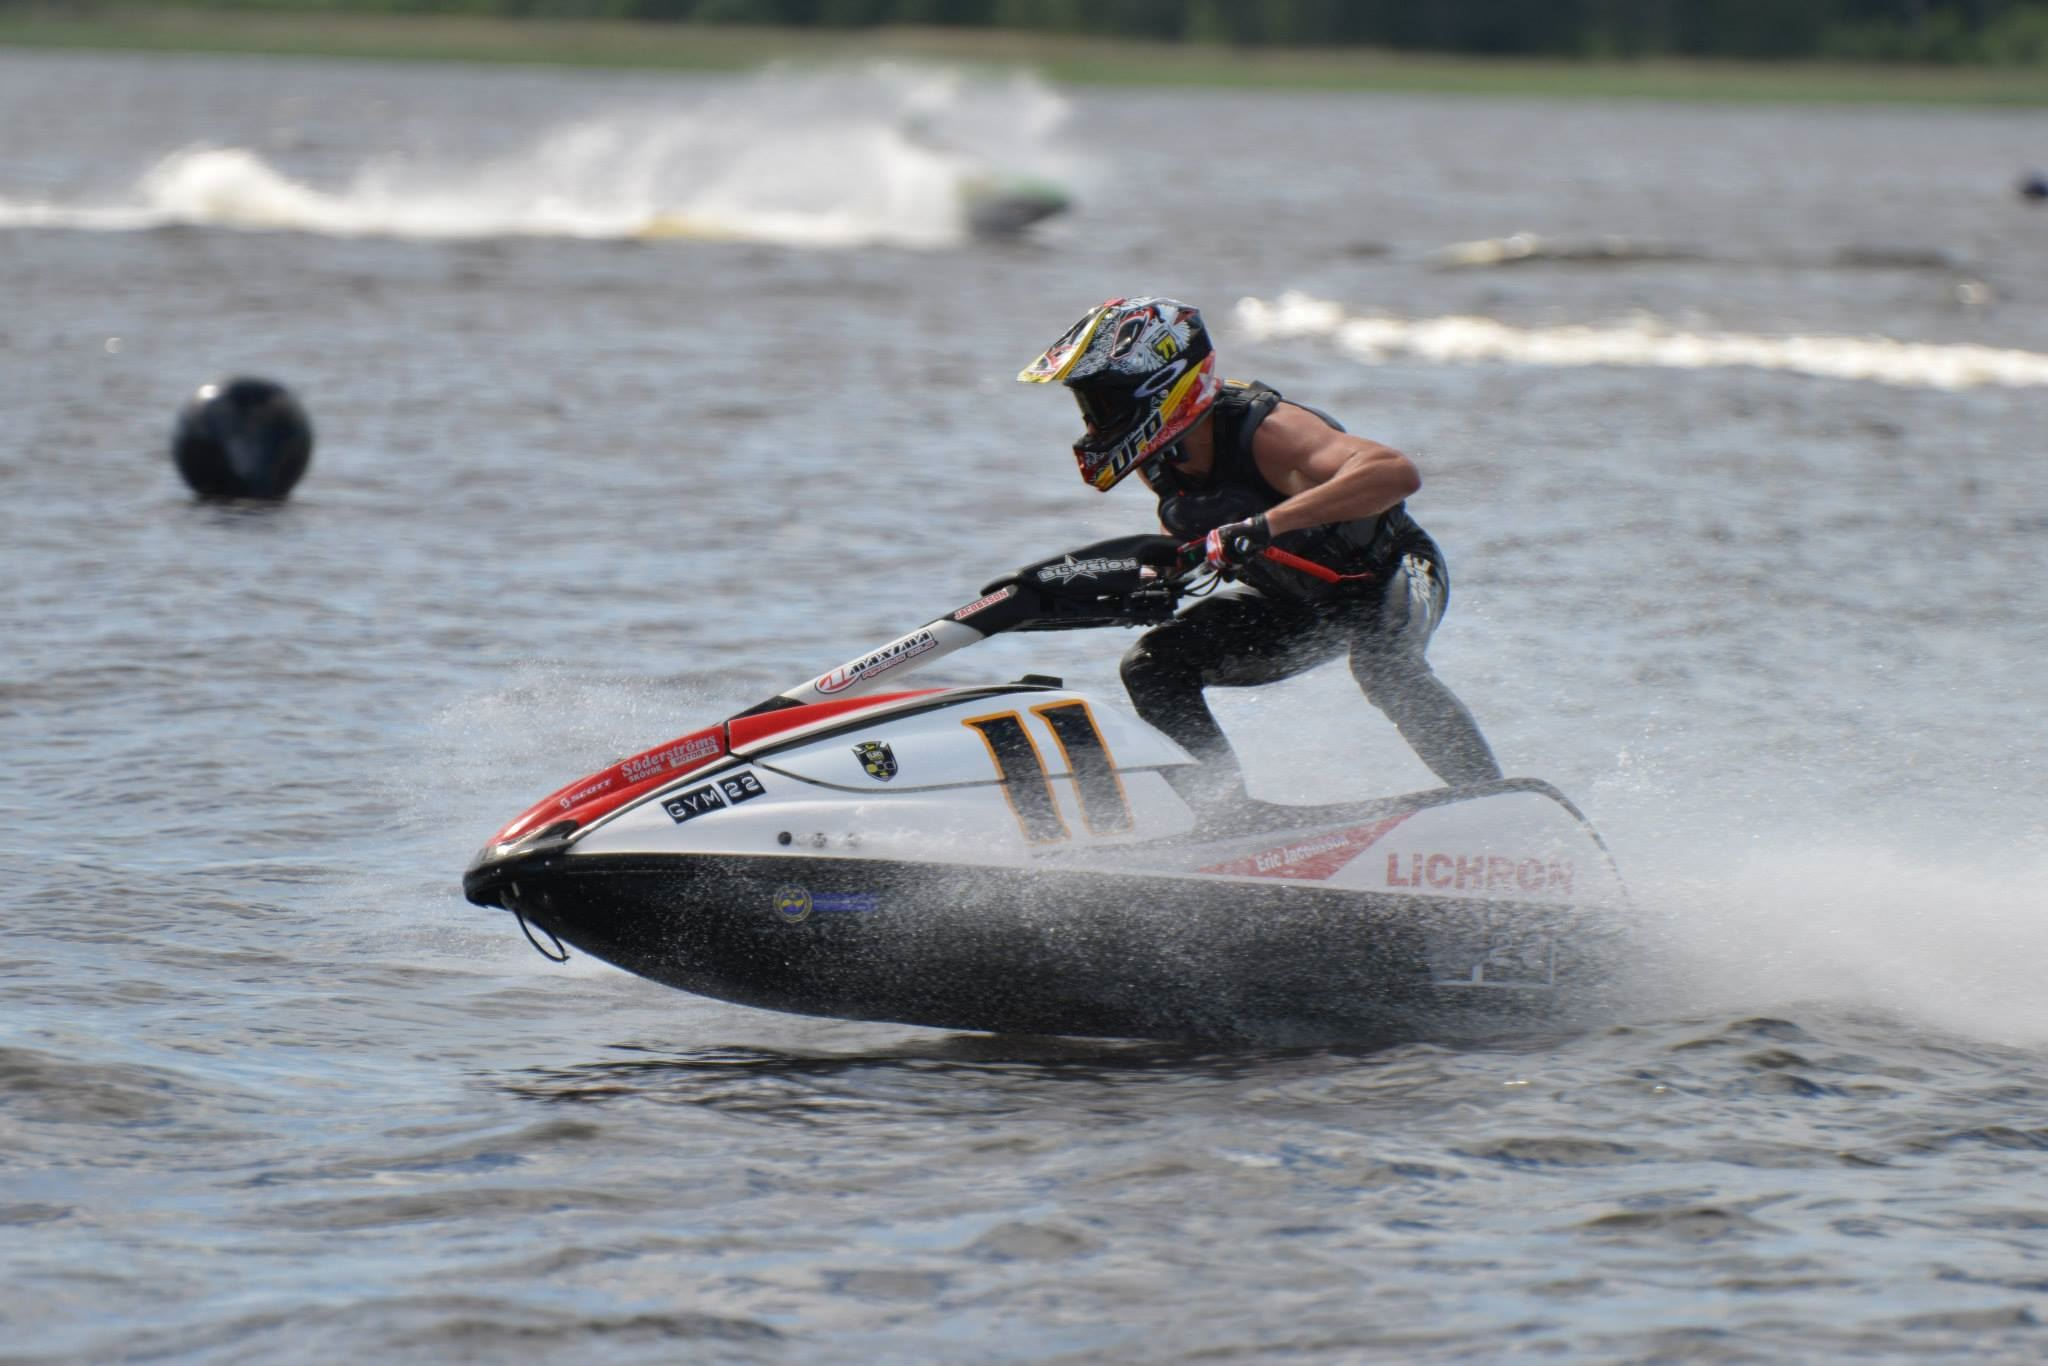 Gävle Jet-Racing Club arrangerar Jet-Ski SM